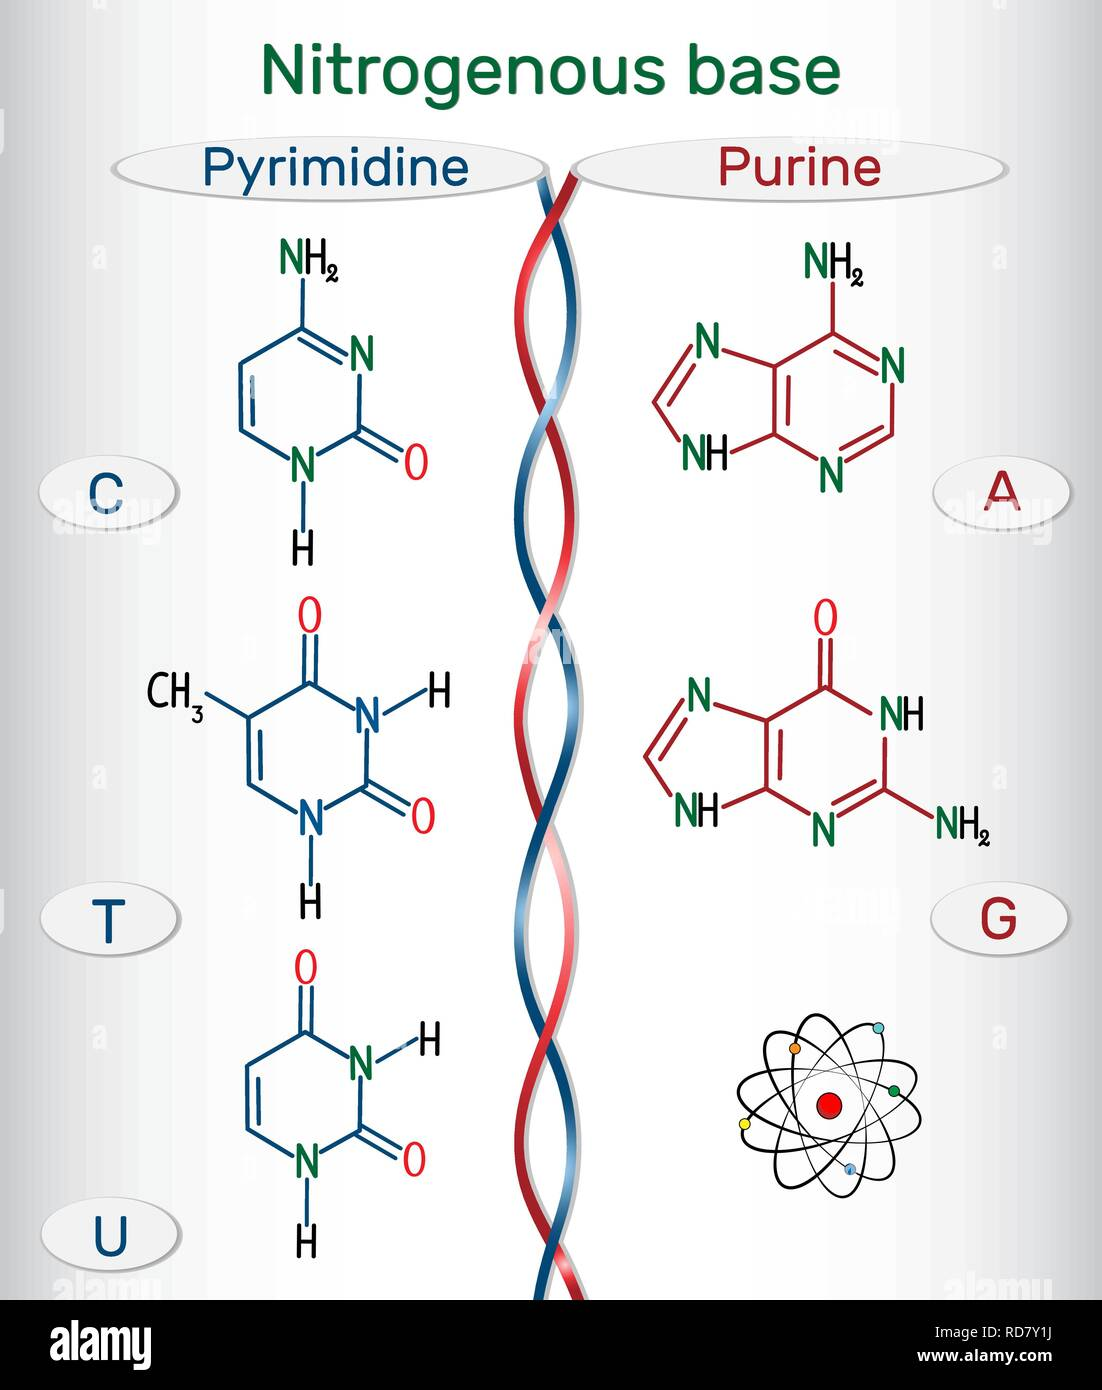 Chemical structural formulas of purine and pyrimidine nitrogenous bases: adenine (A, Ade), guanine (G, Gua) , thymine (T, Thy), uracil (U), cytosine ( - Stock Image